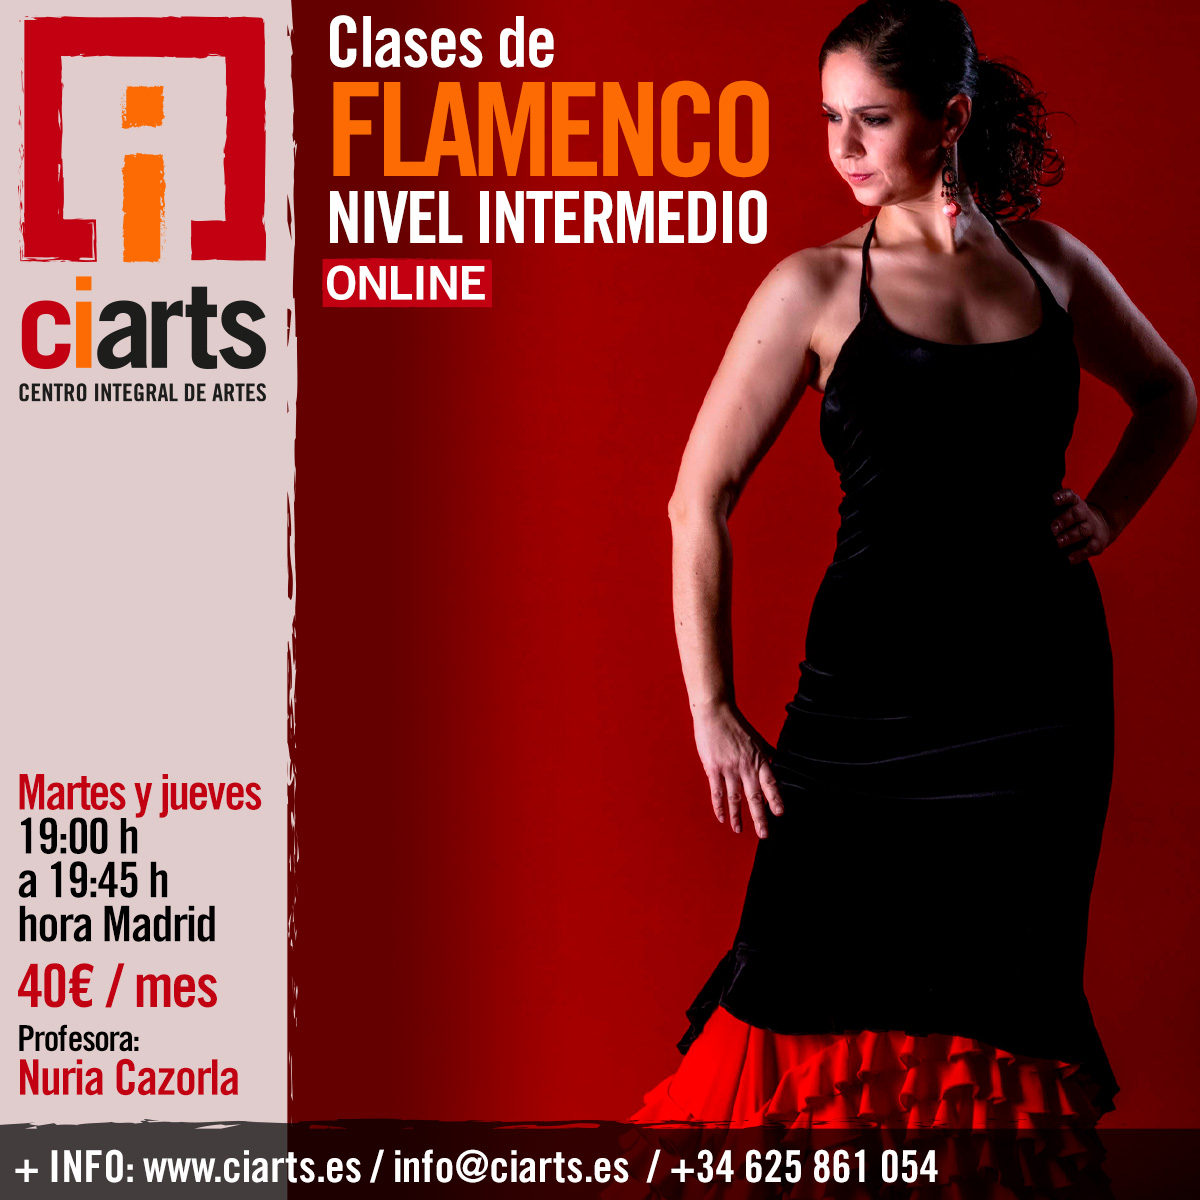 Flamenco Intermedio copy